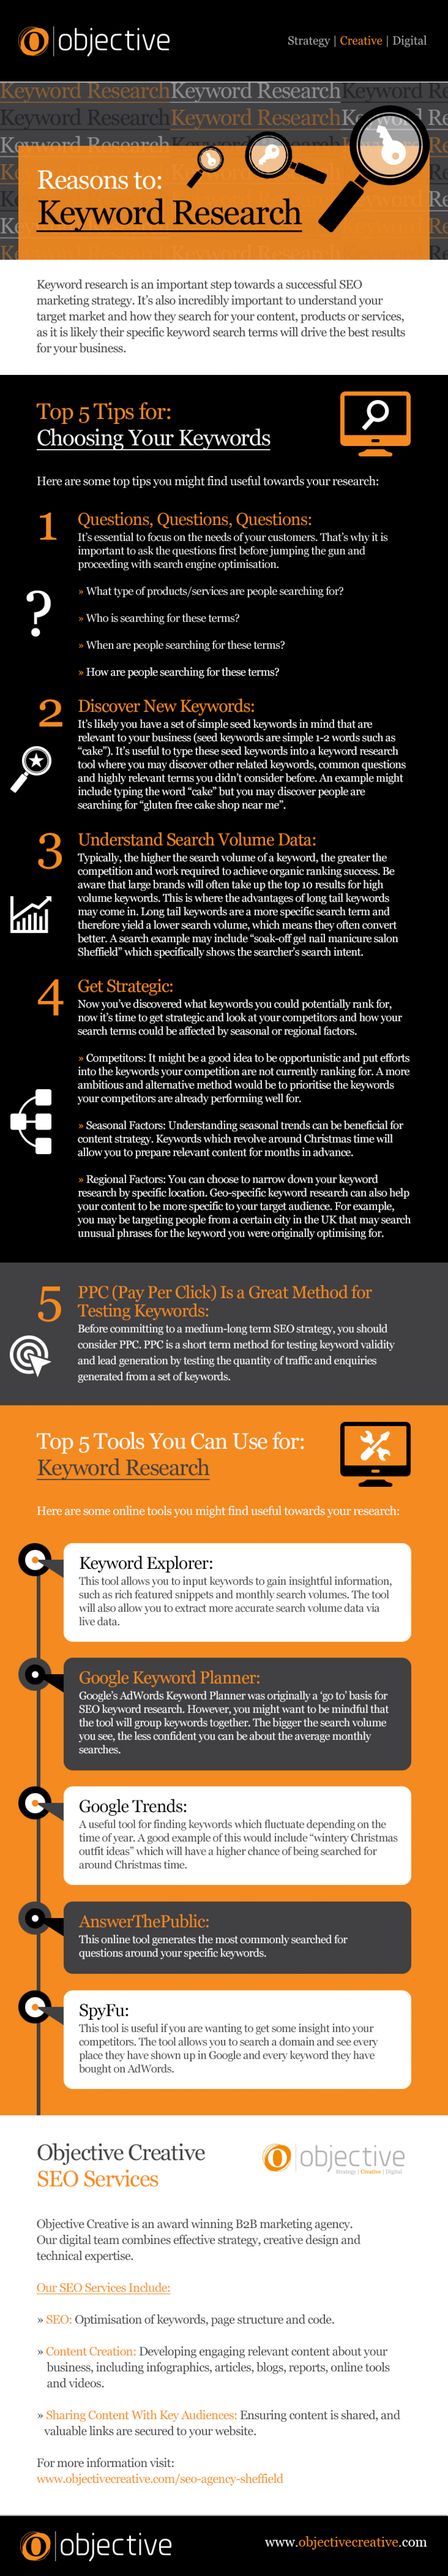 Reasons to:Keyword Research Infographic